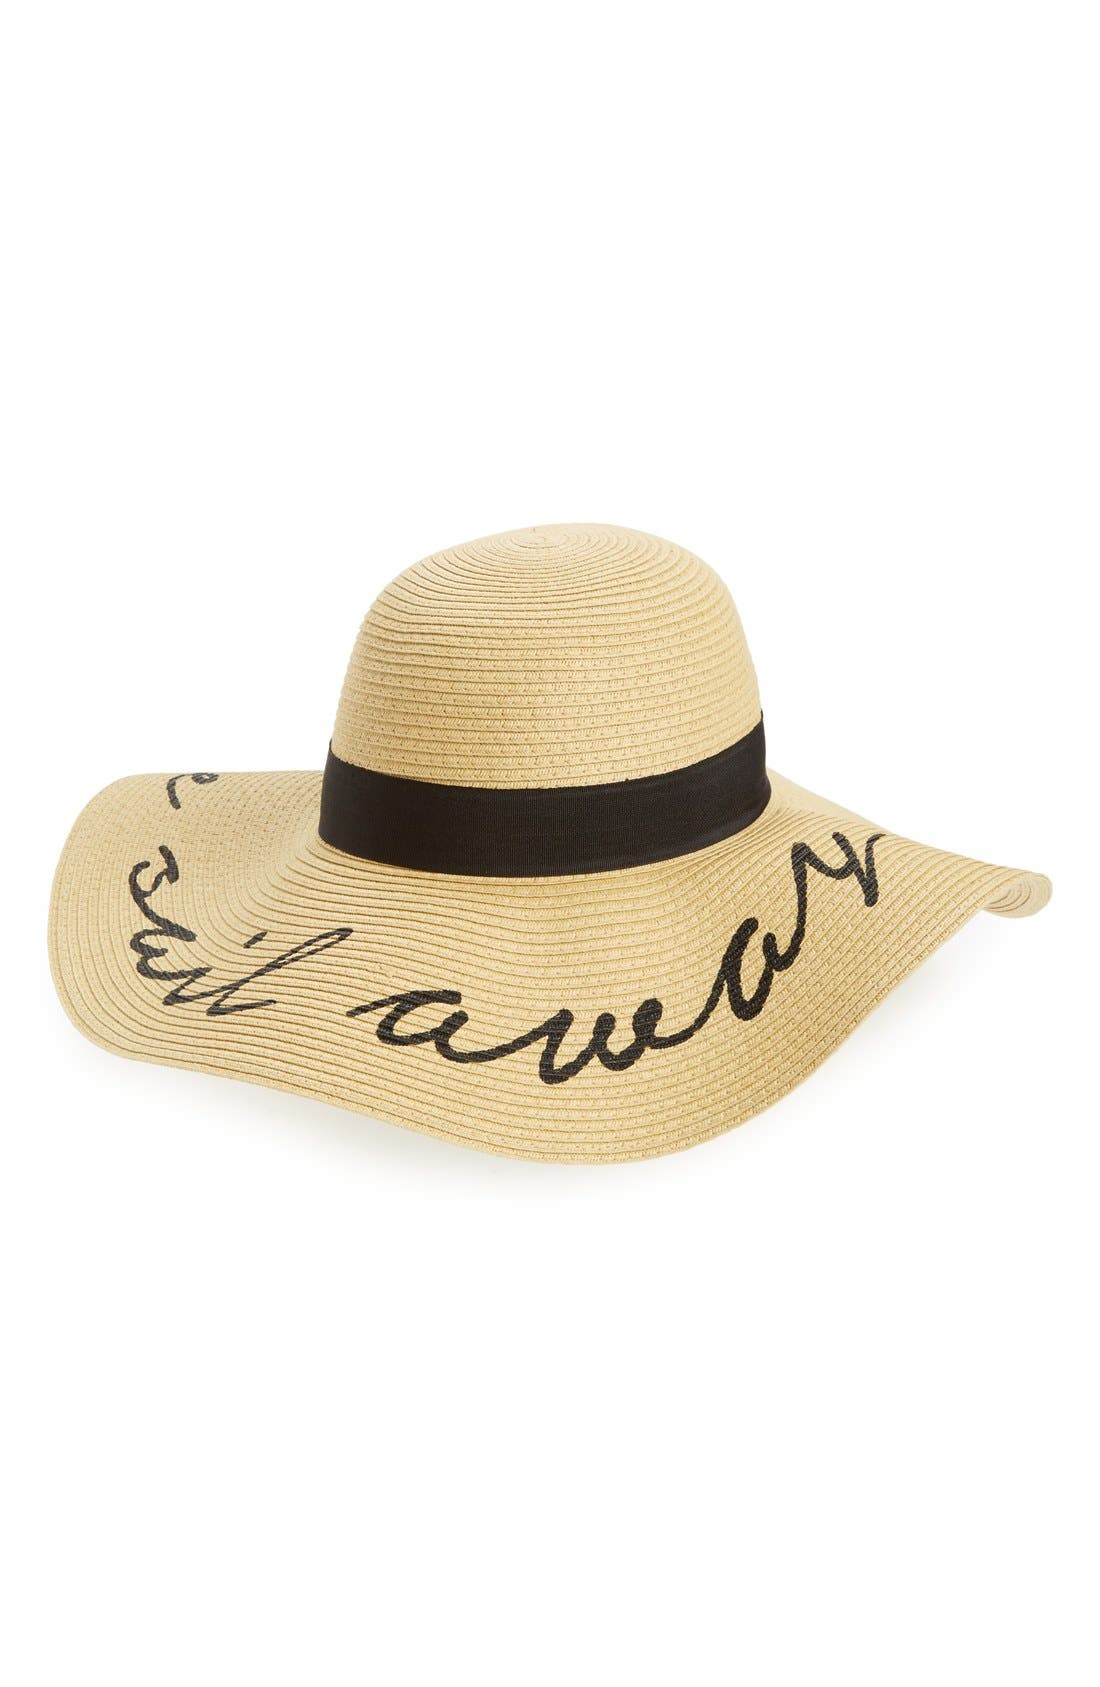 'Come Sail Away' Floppy Straw Hat,                         Main,                         color, 285